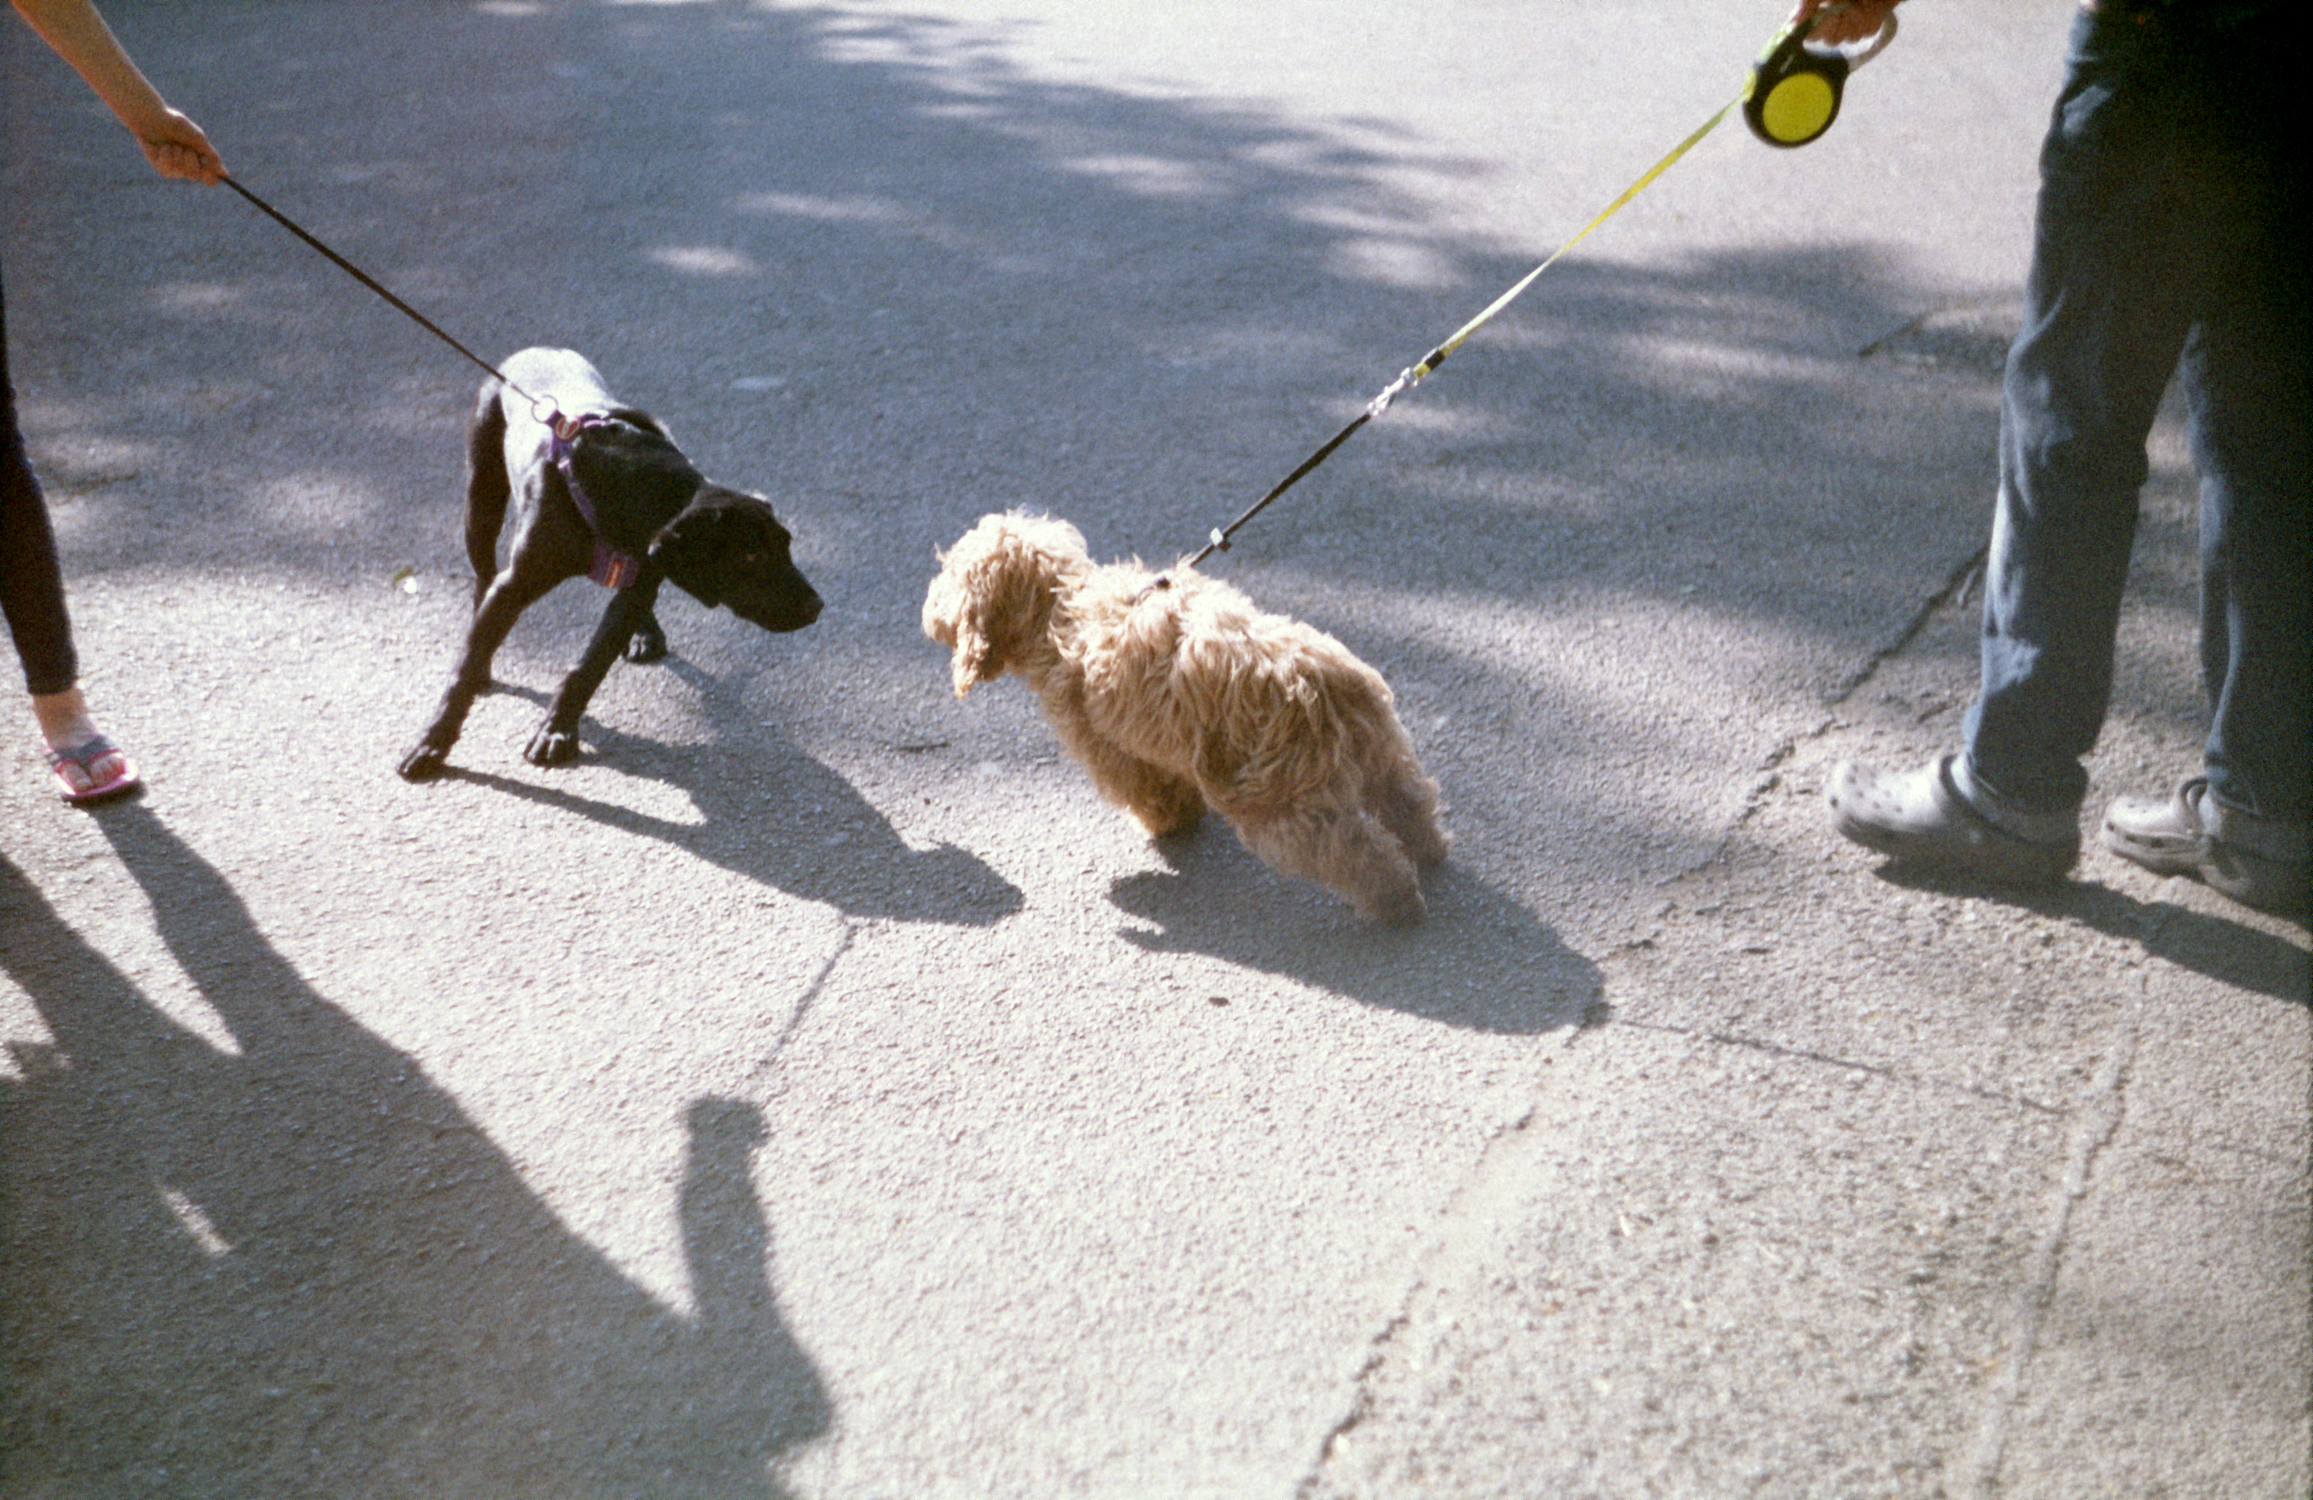 Dogs on leashes (Pic: Stephen Dowling)